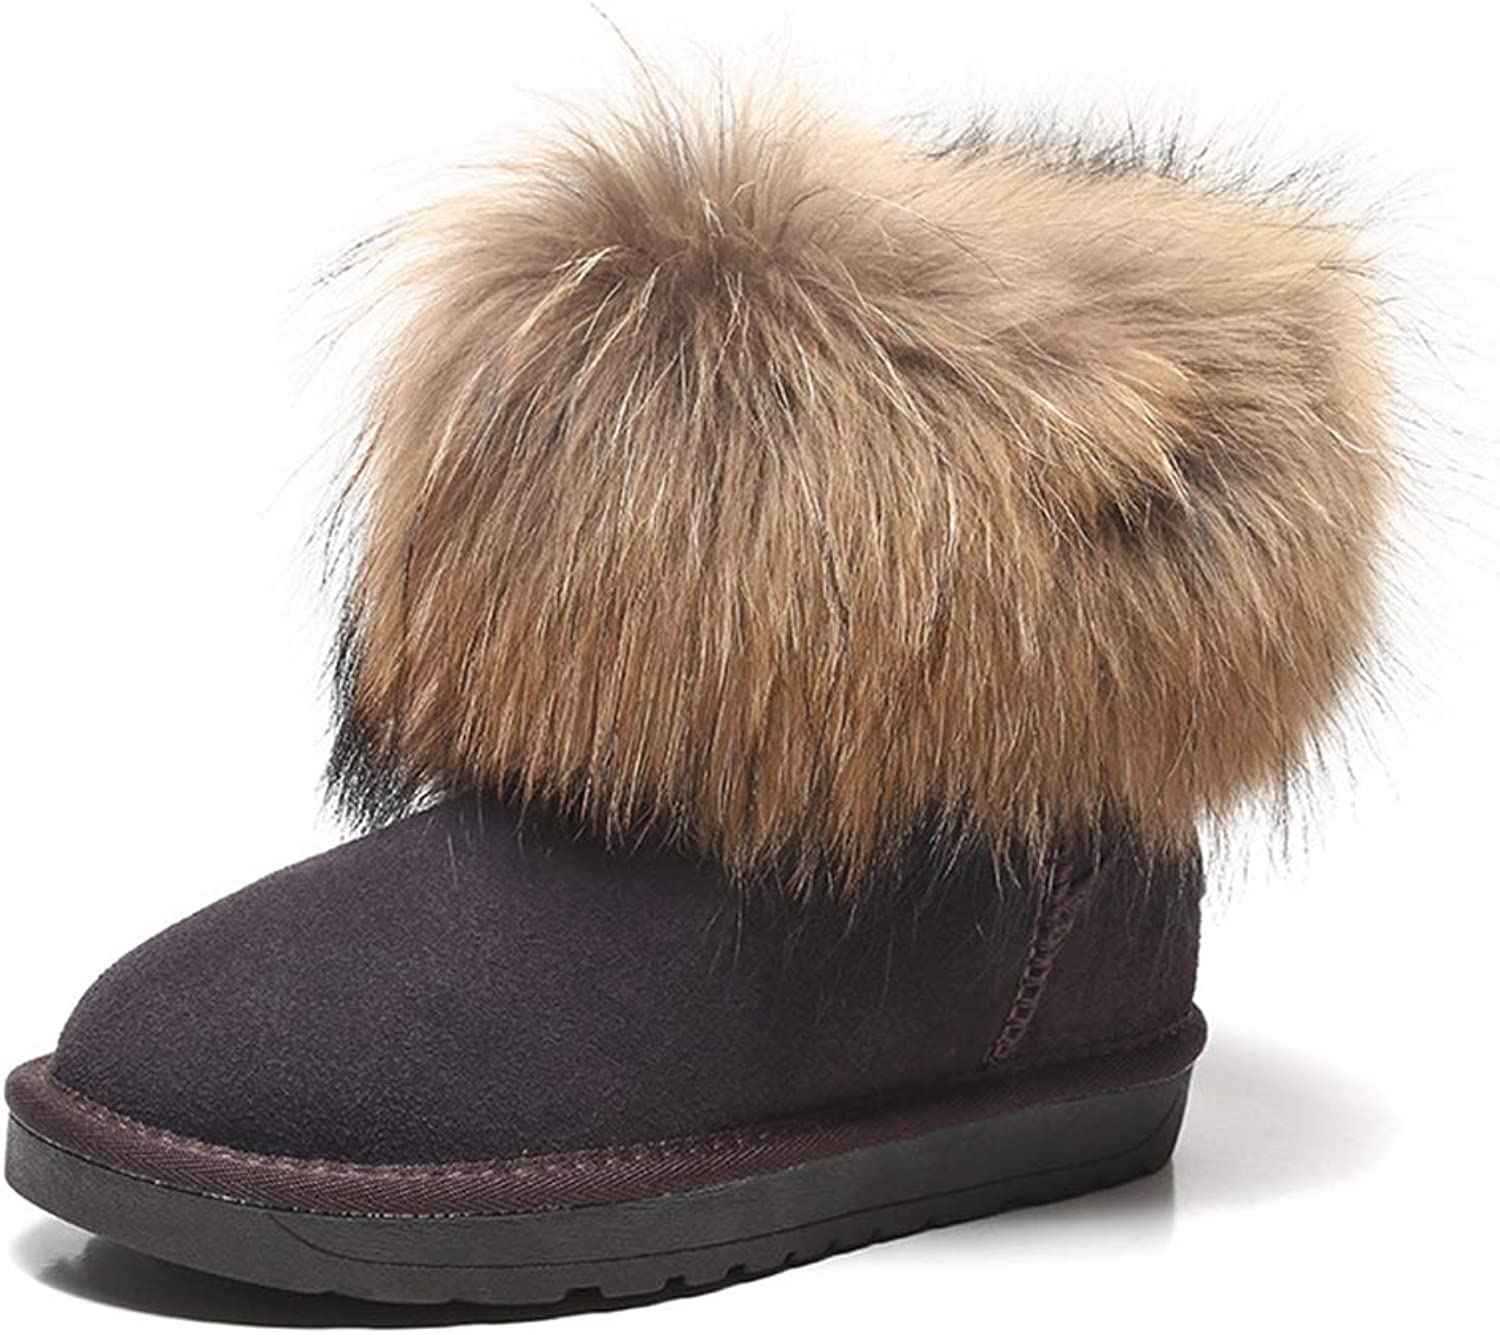 Kyle Walsh Pa Women Snow Boots Soft Fur Comfortable Round Toe Ladies Winter Trendy Ankle Booties